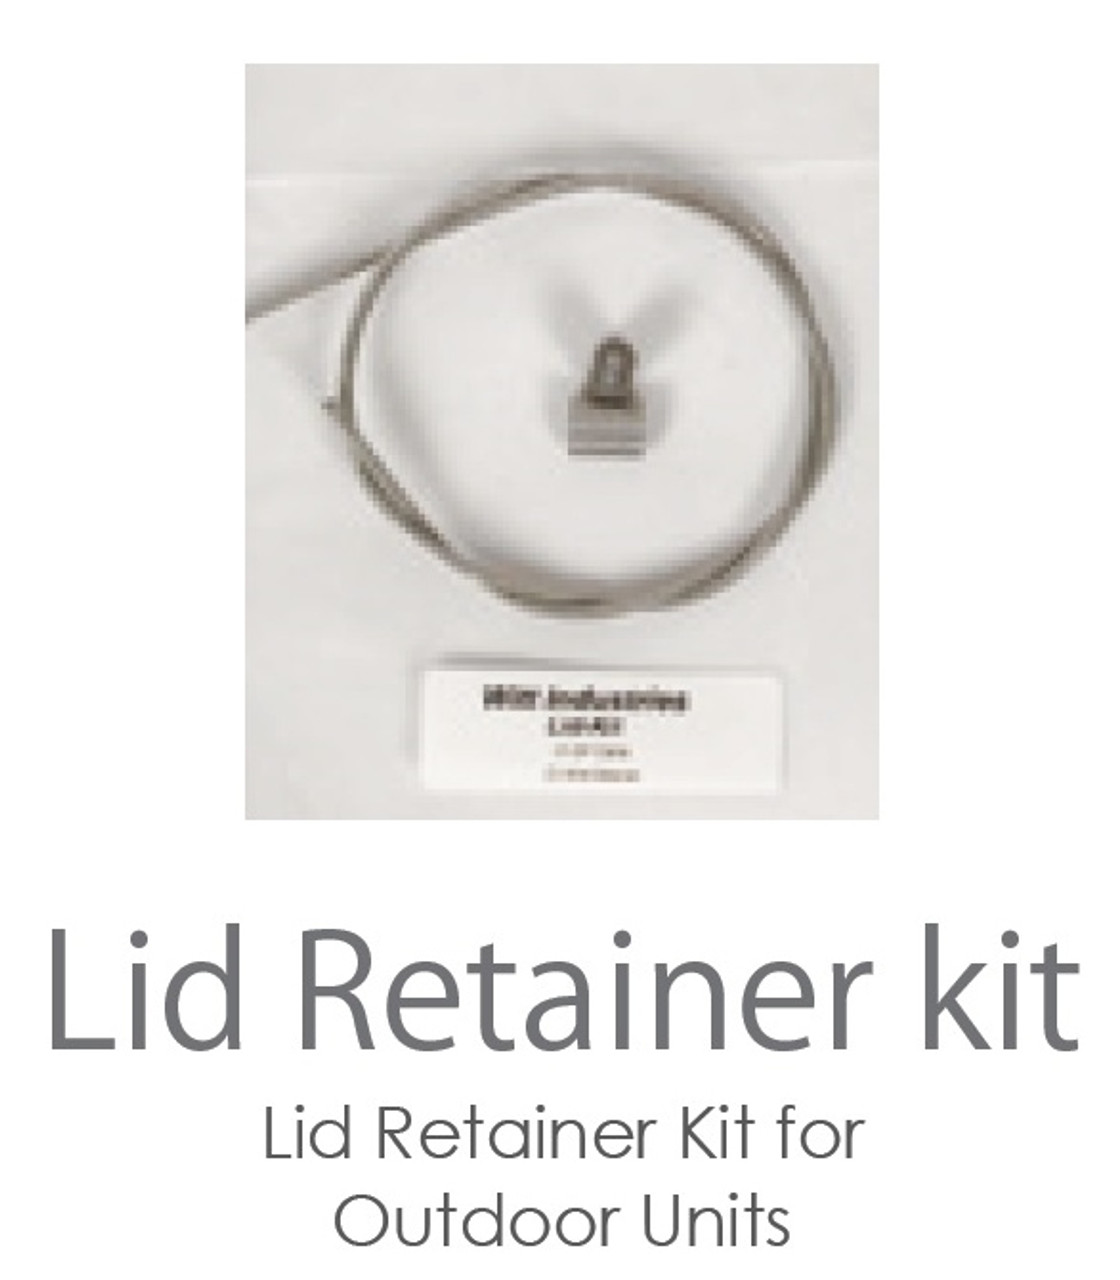 Lid Cable Kit Included